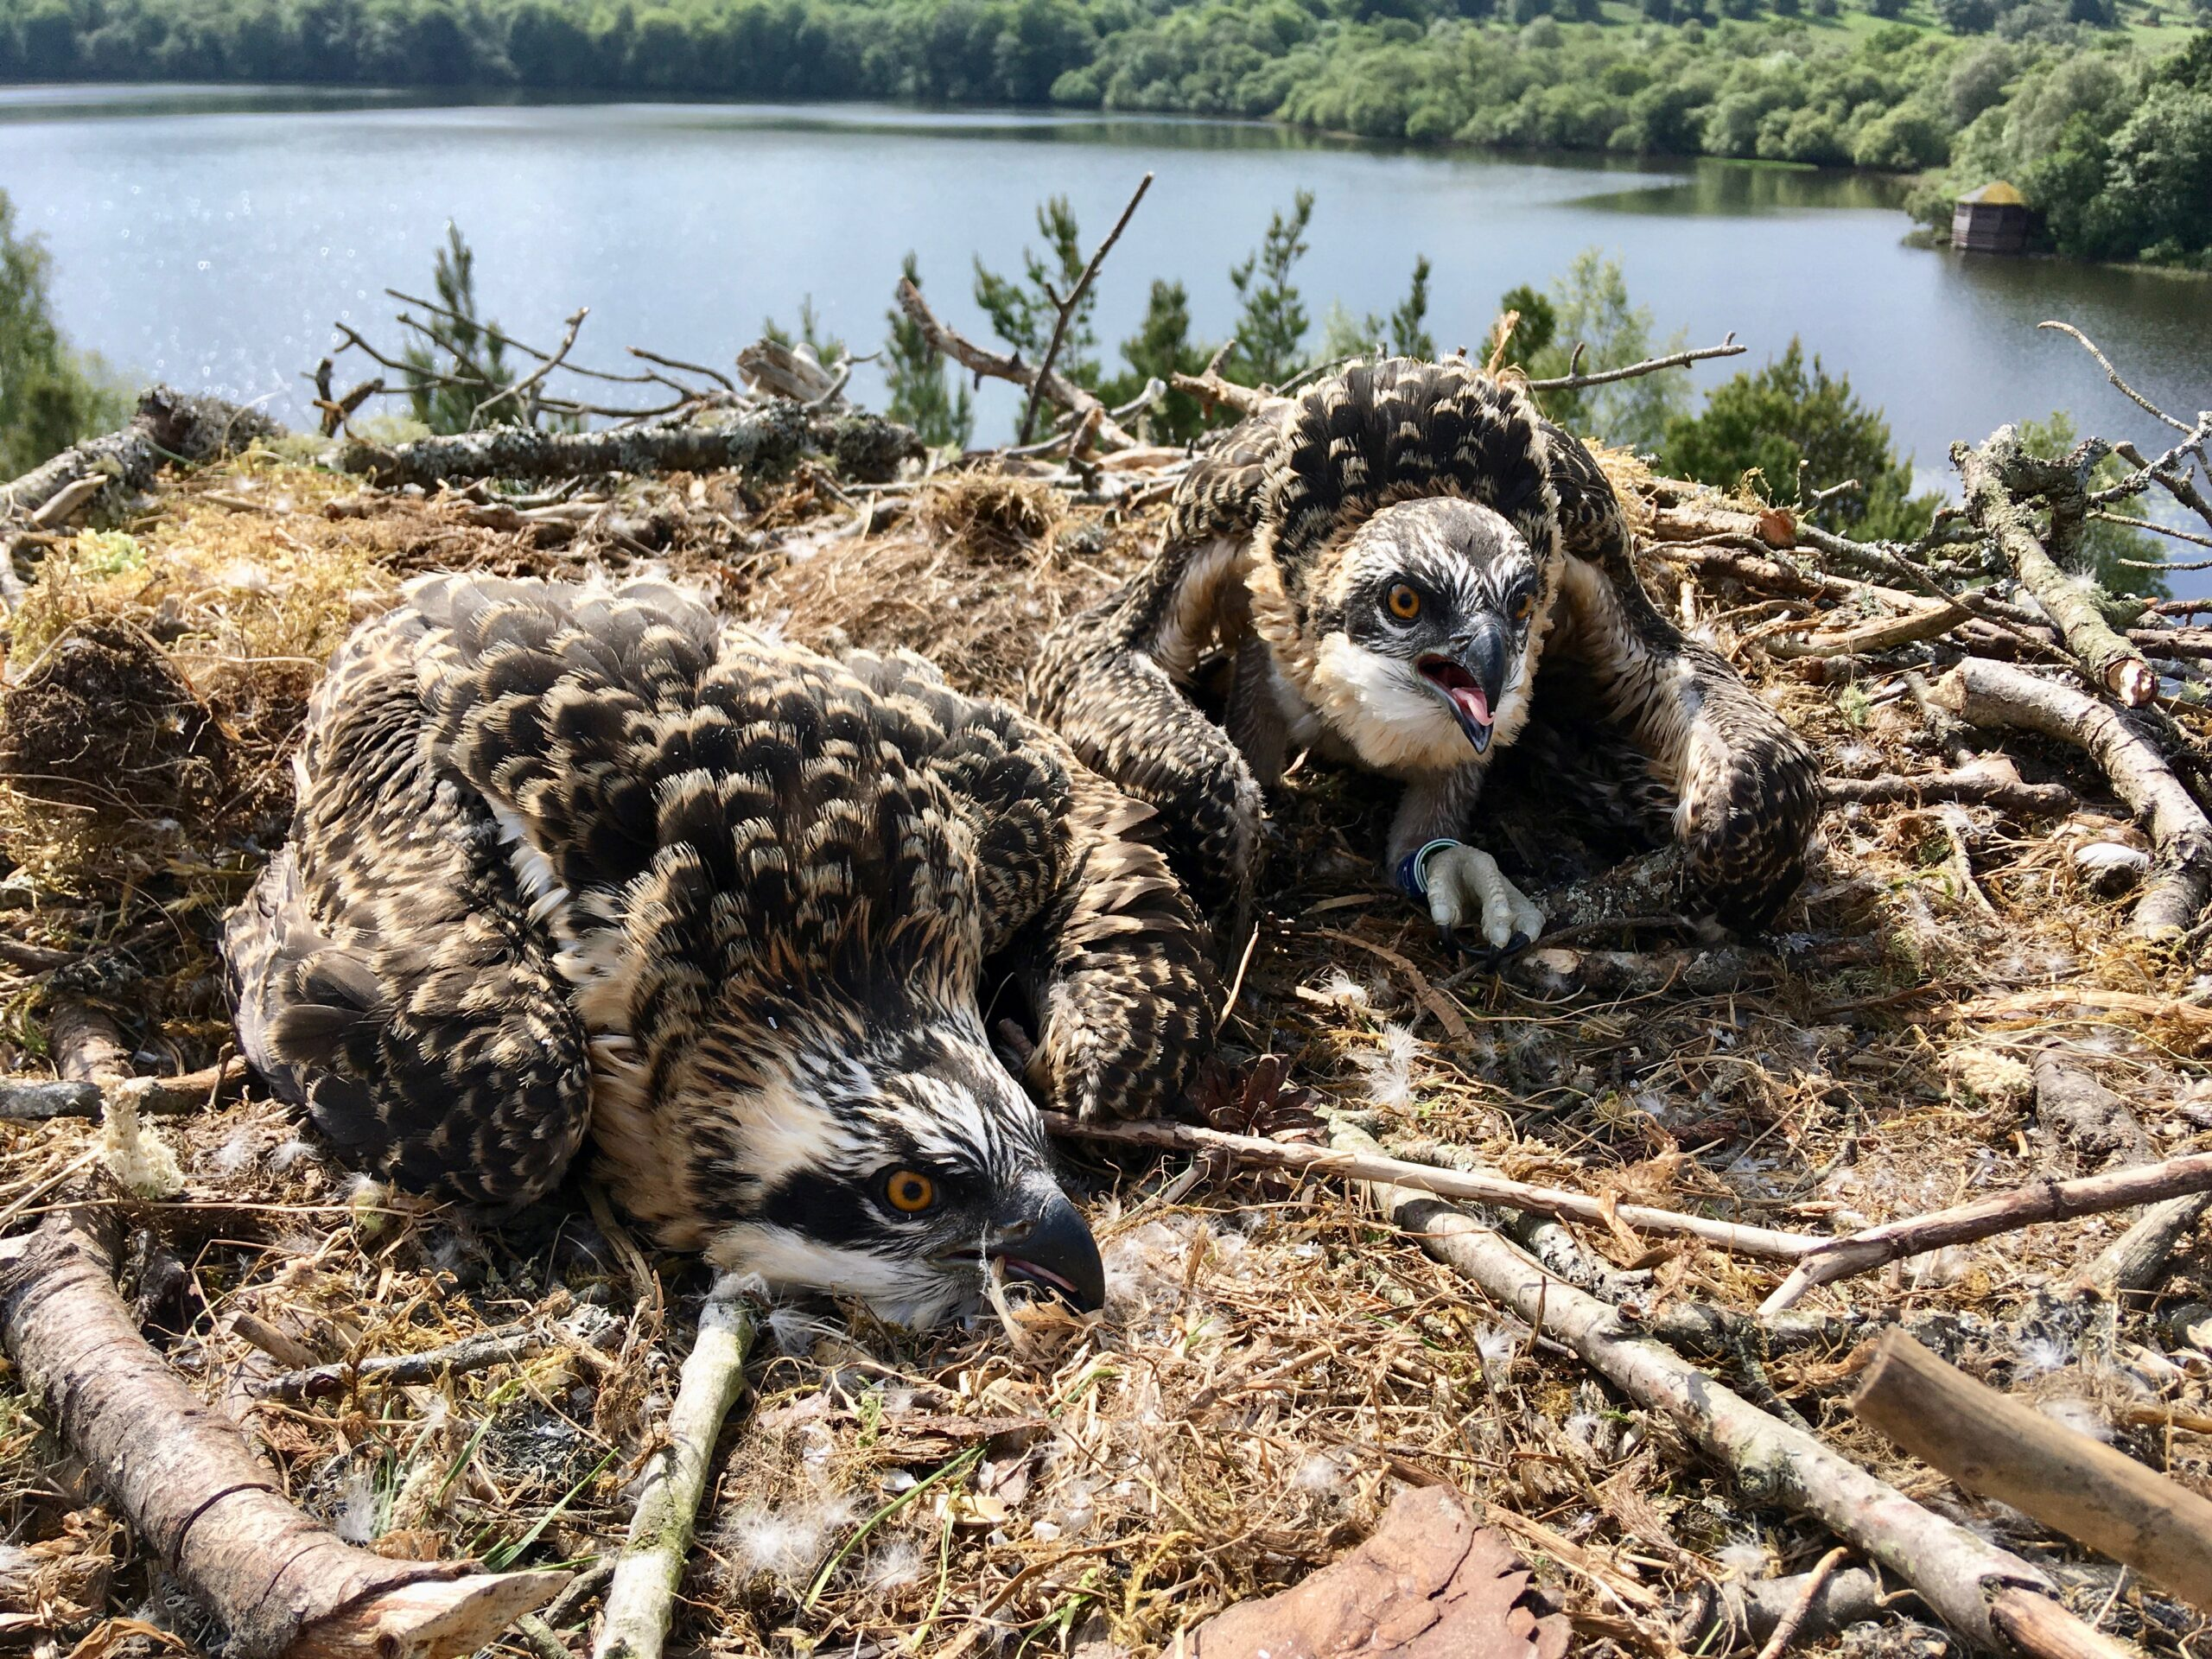 Meet our newly ringed osprey chicks LR1 and LR2